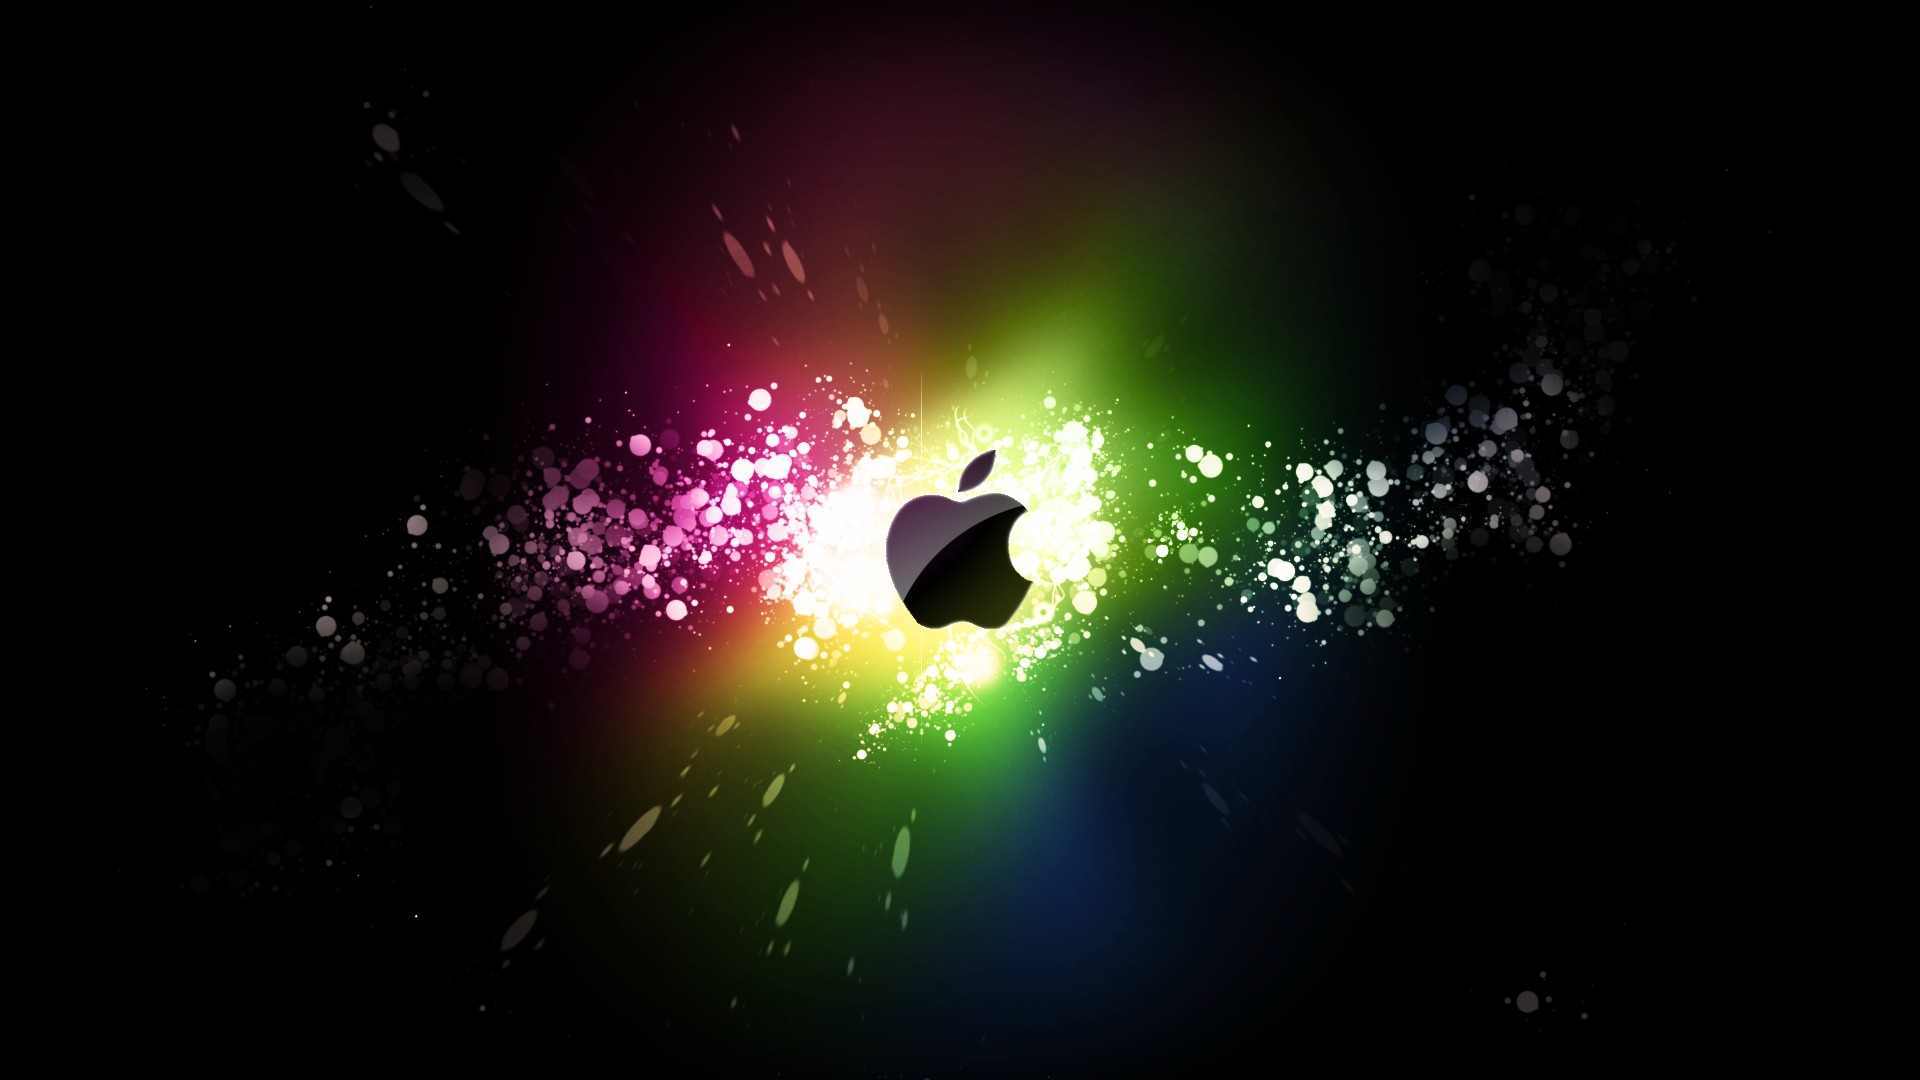 HD Apple 3D Backgrounds - Page 2 of 3 - wallpaper.wiki